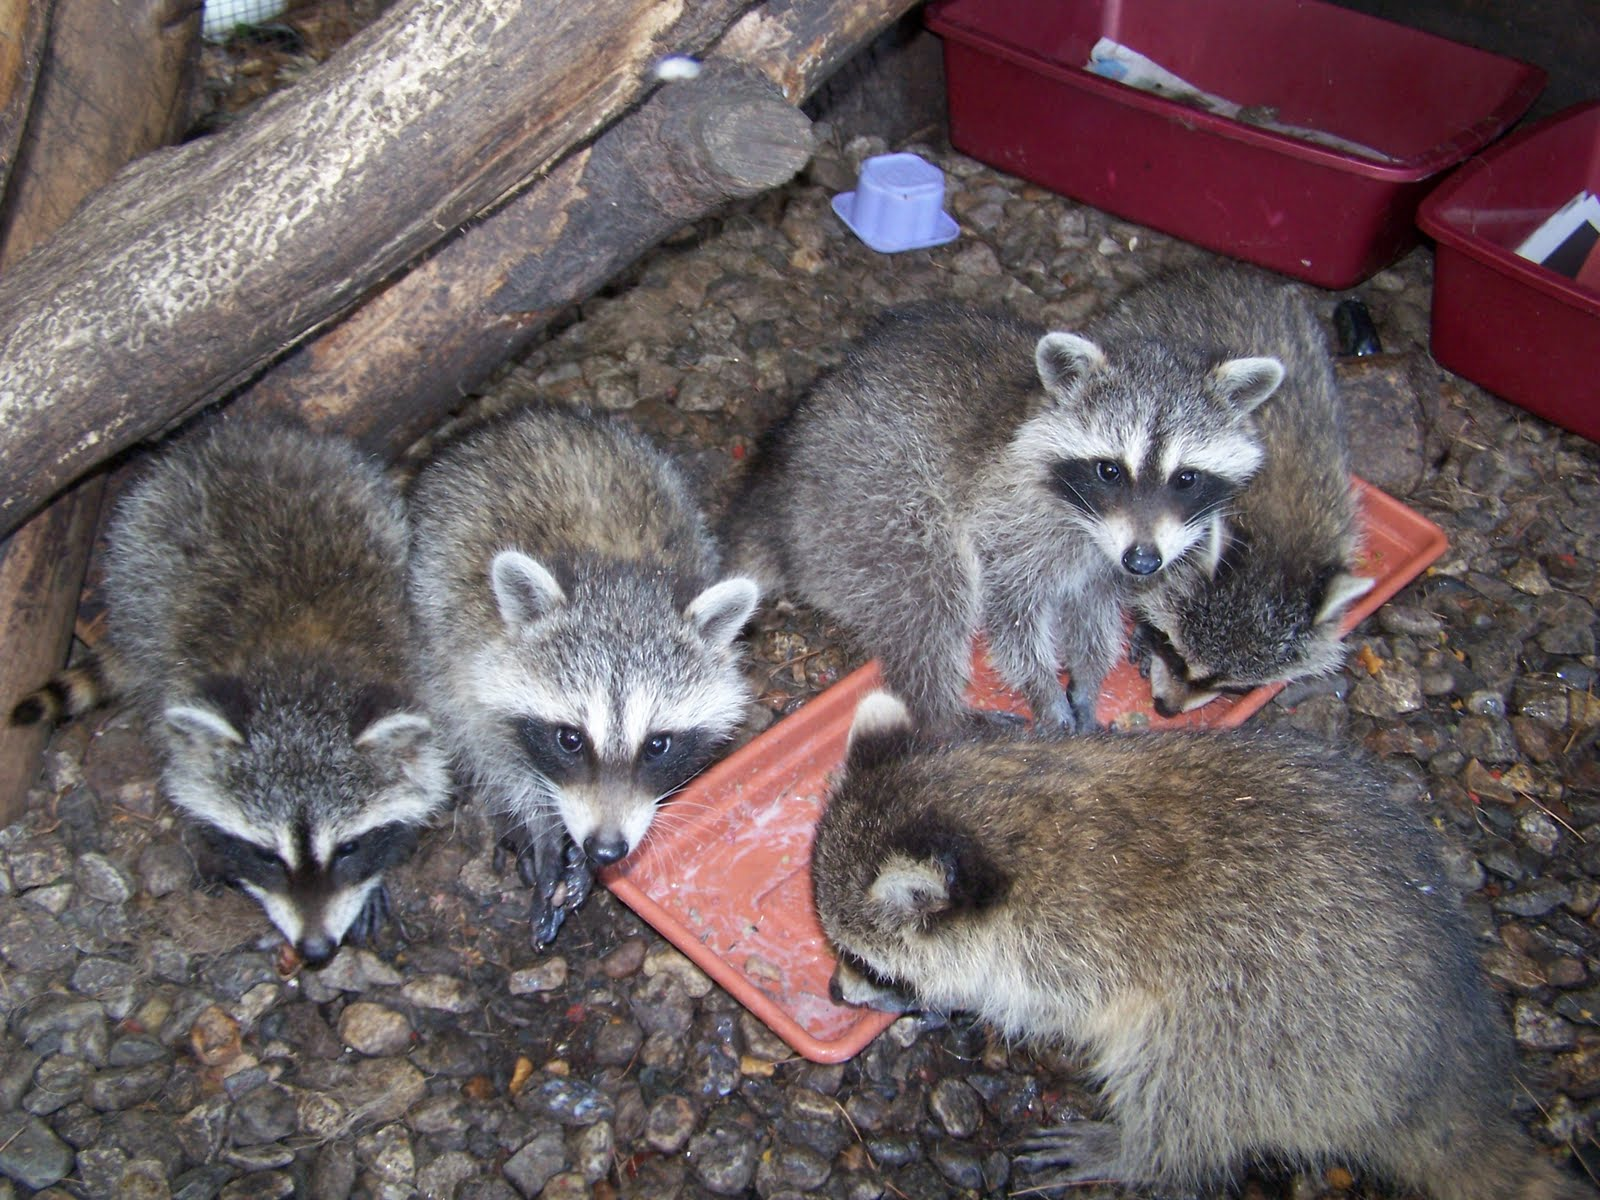 The Laughing Raccoon: Mangy coons! Raccoon With Mange